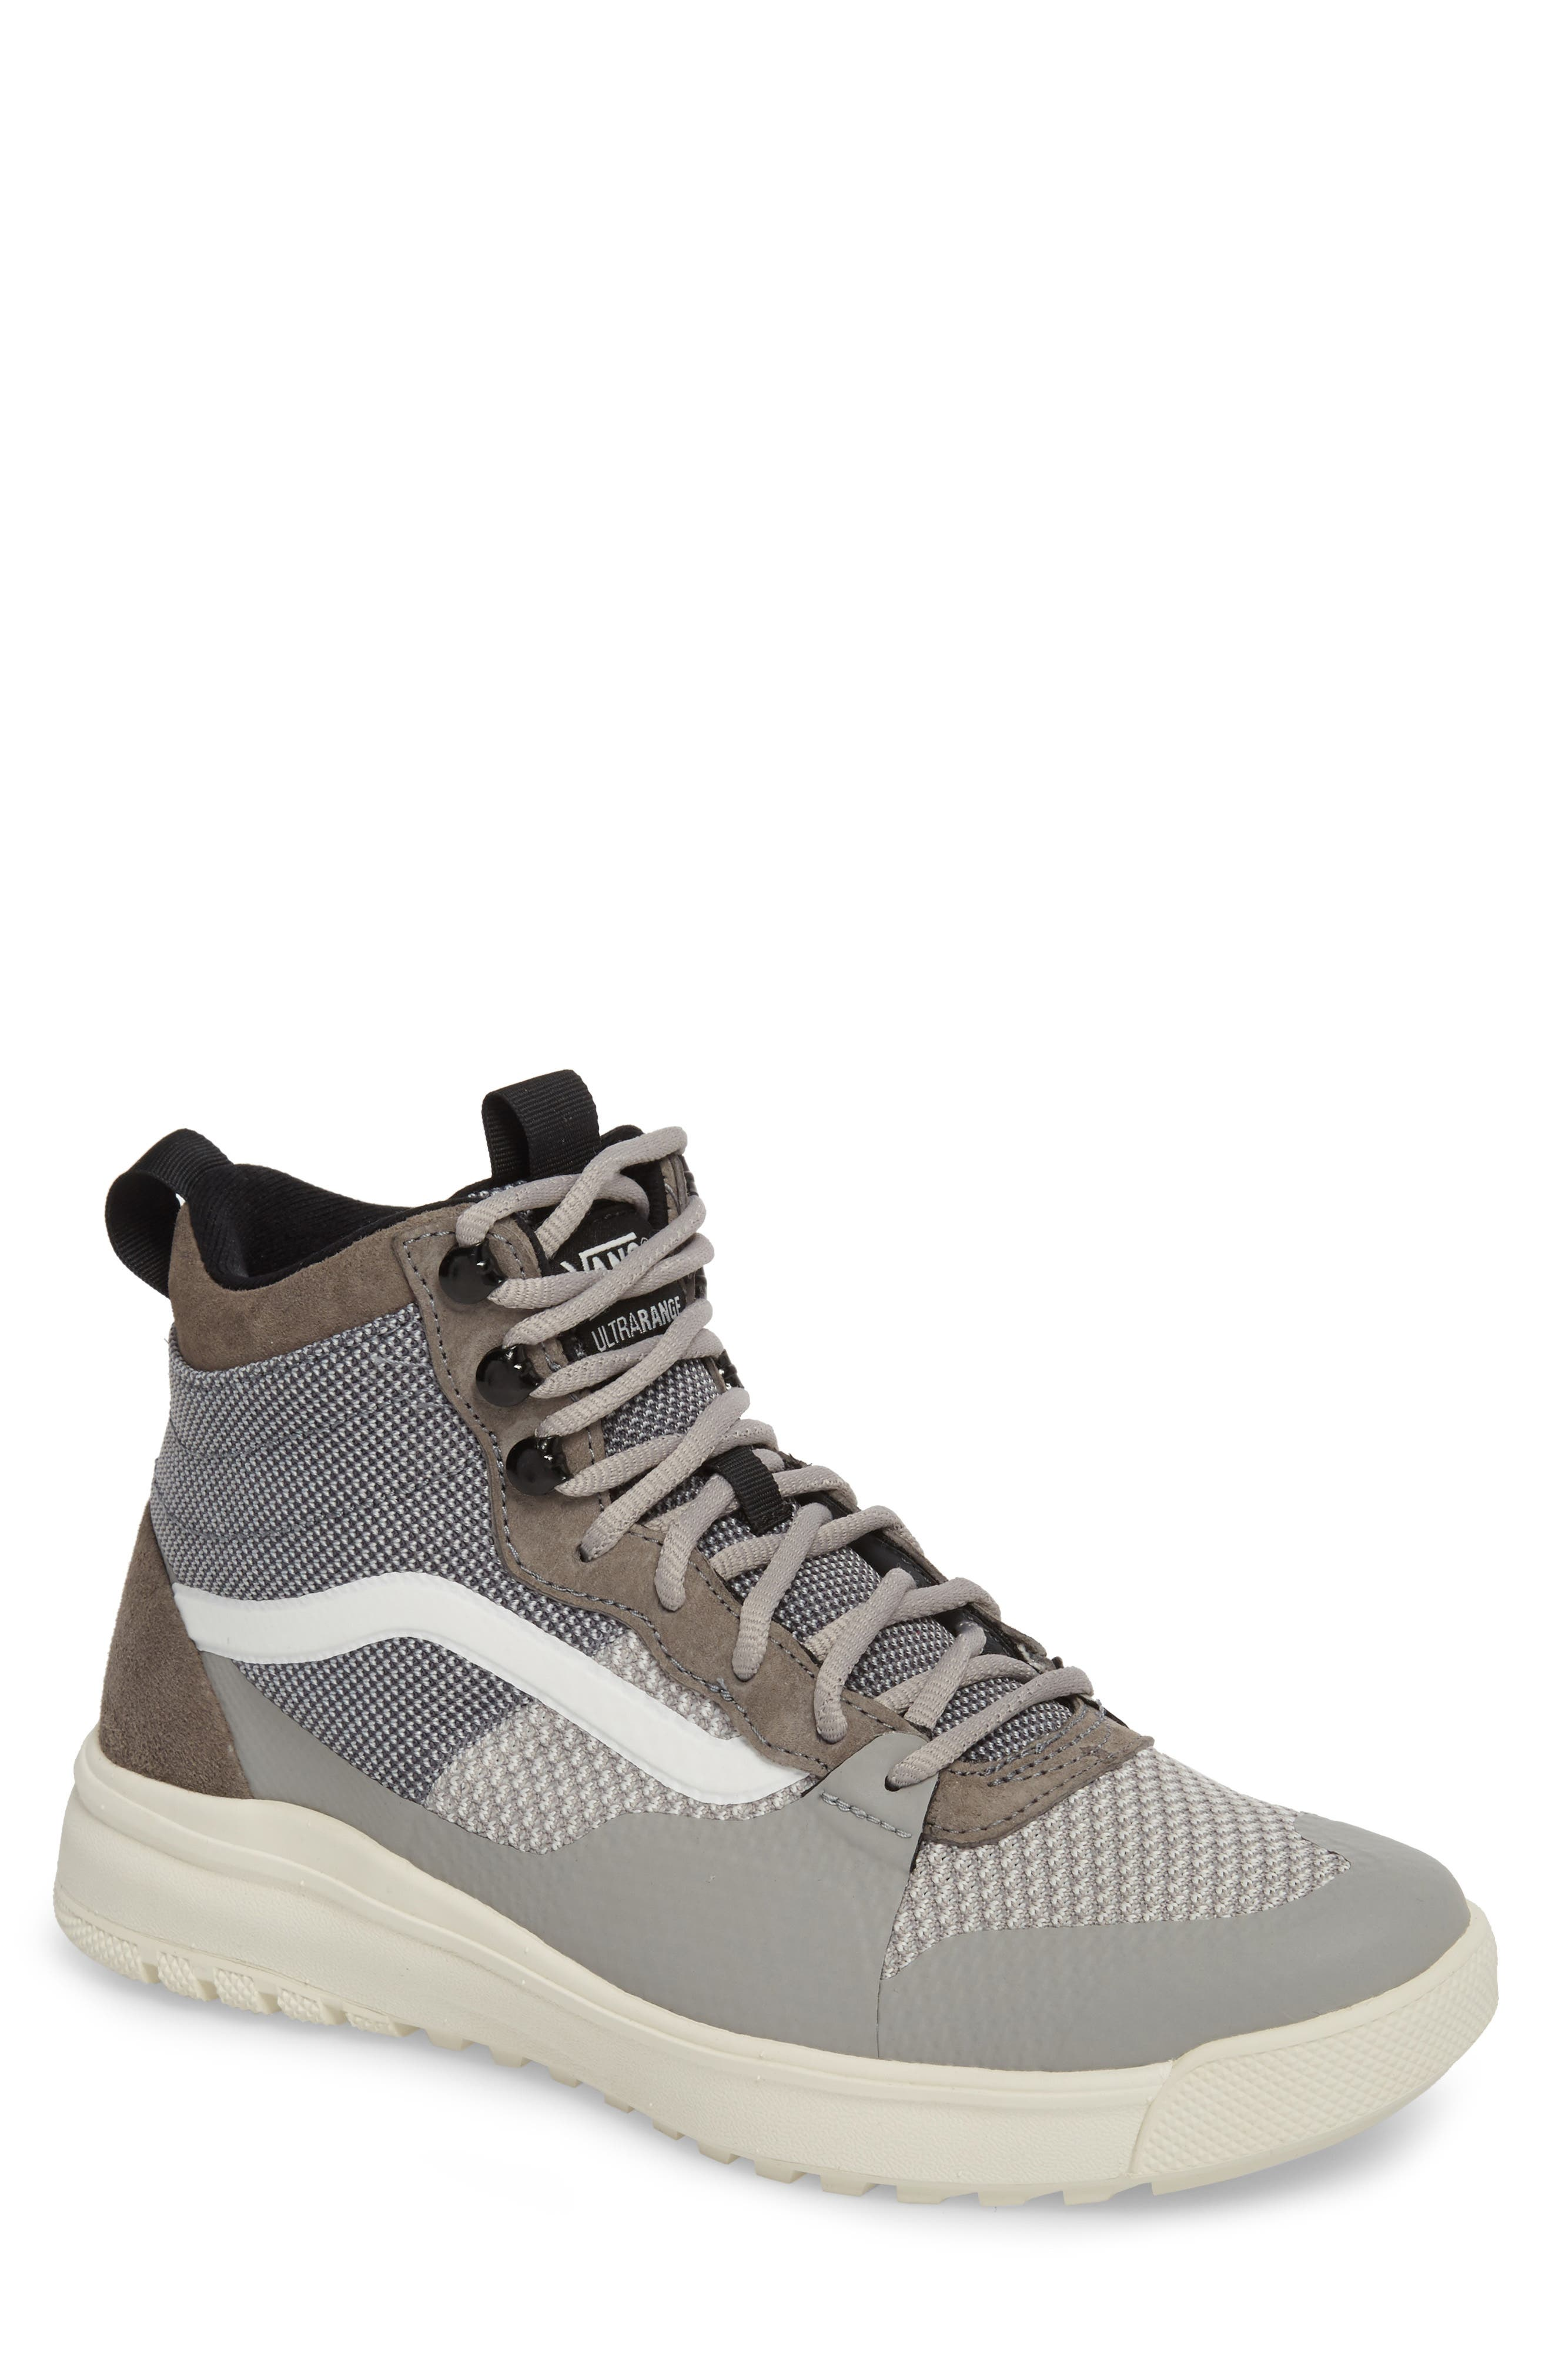 UltraRange DX High Top Sneaker,                         Main,                         color, Pewter/ Drizzle